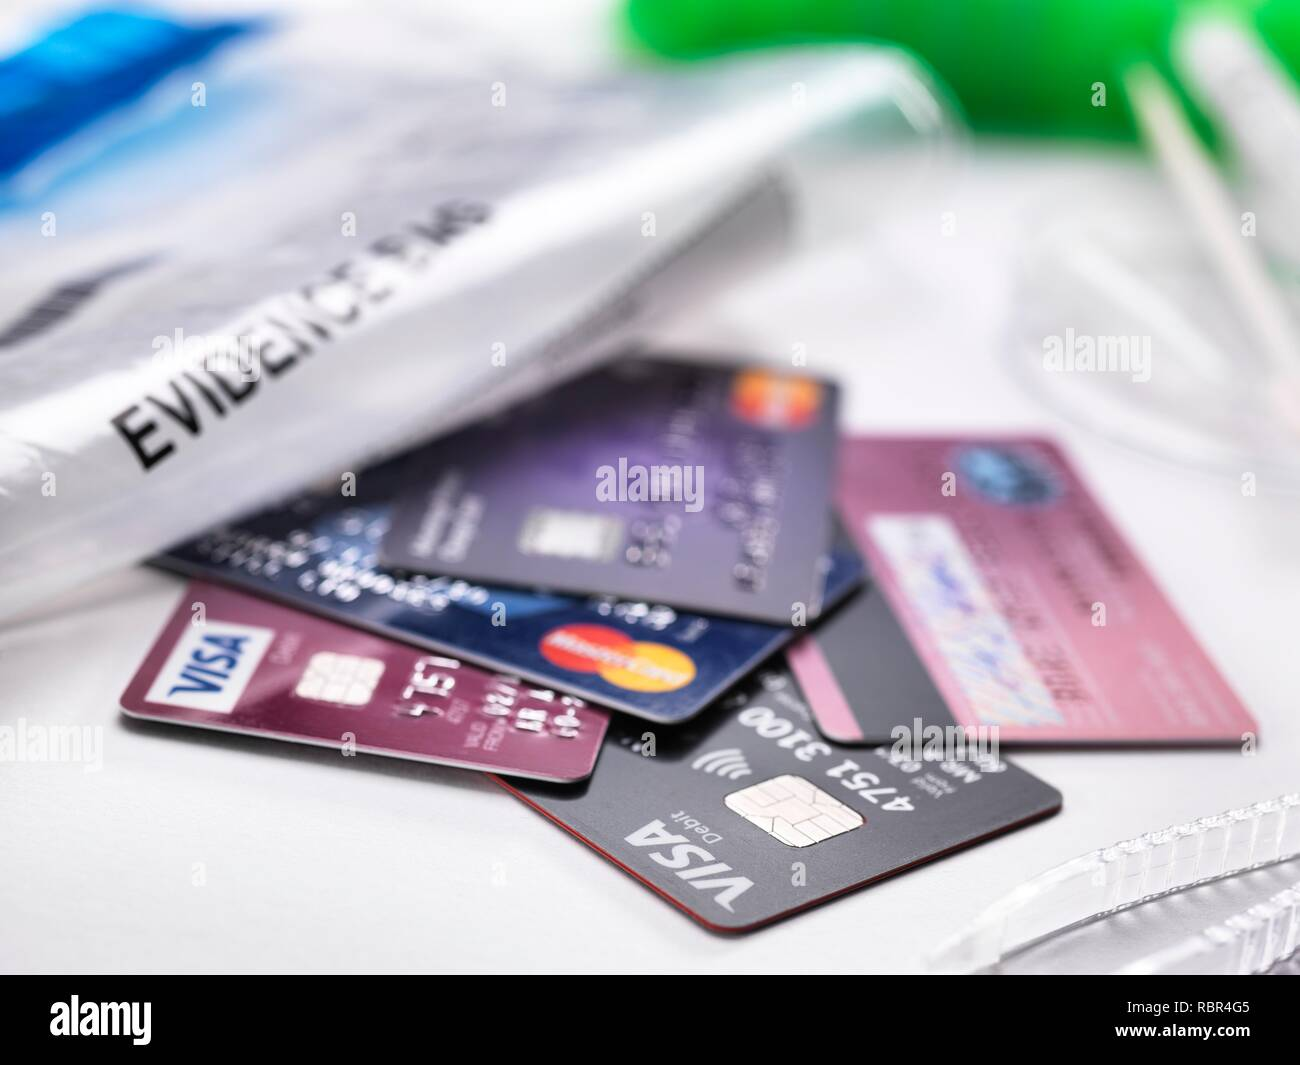 Credit cards taken from a crime scene. - Stock Image